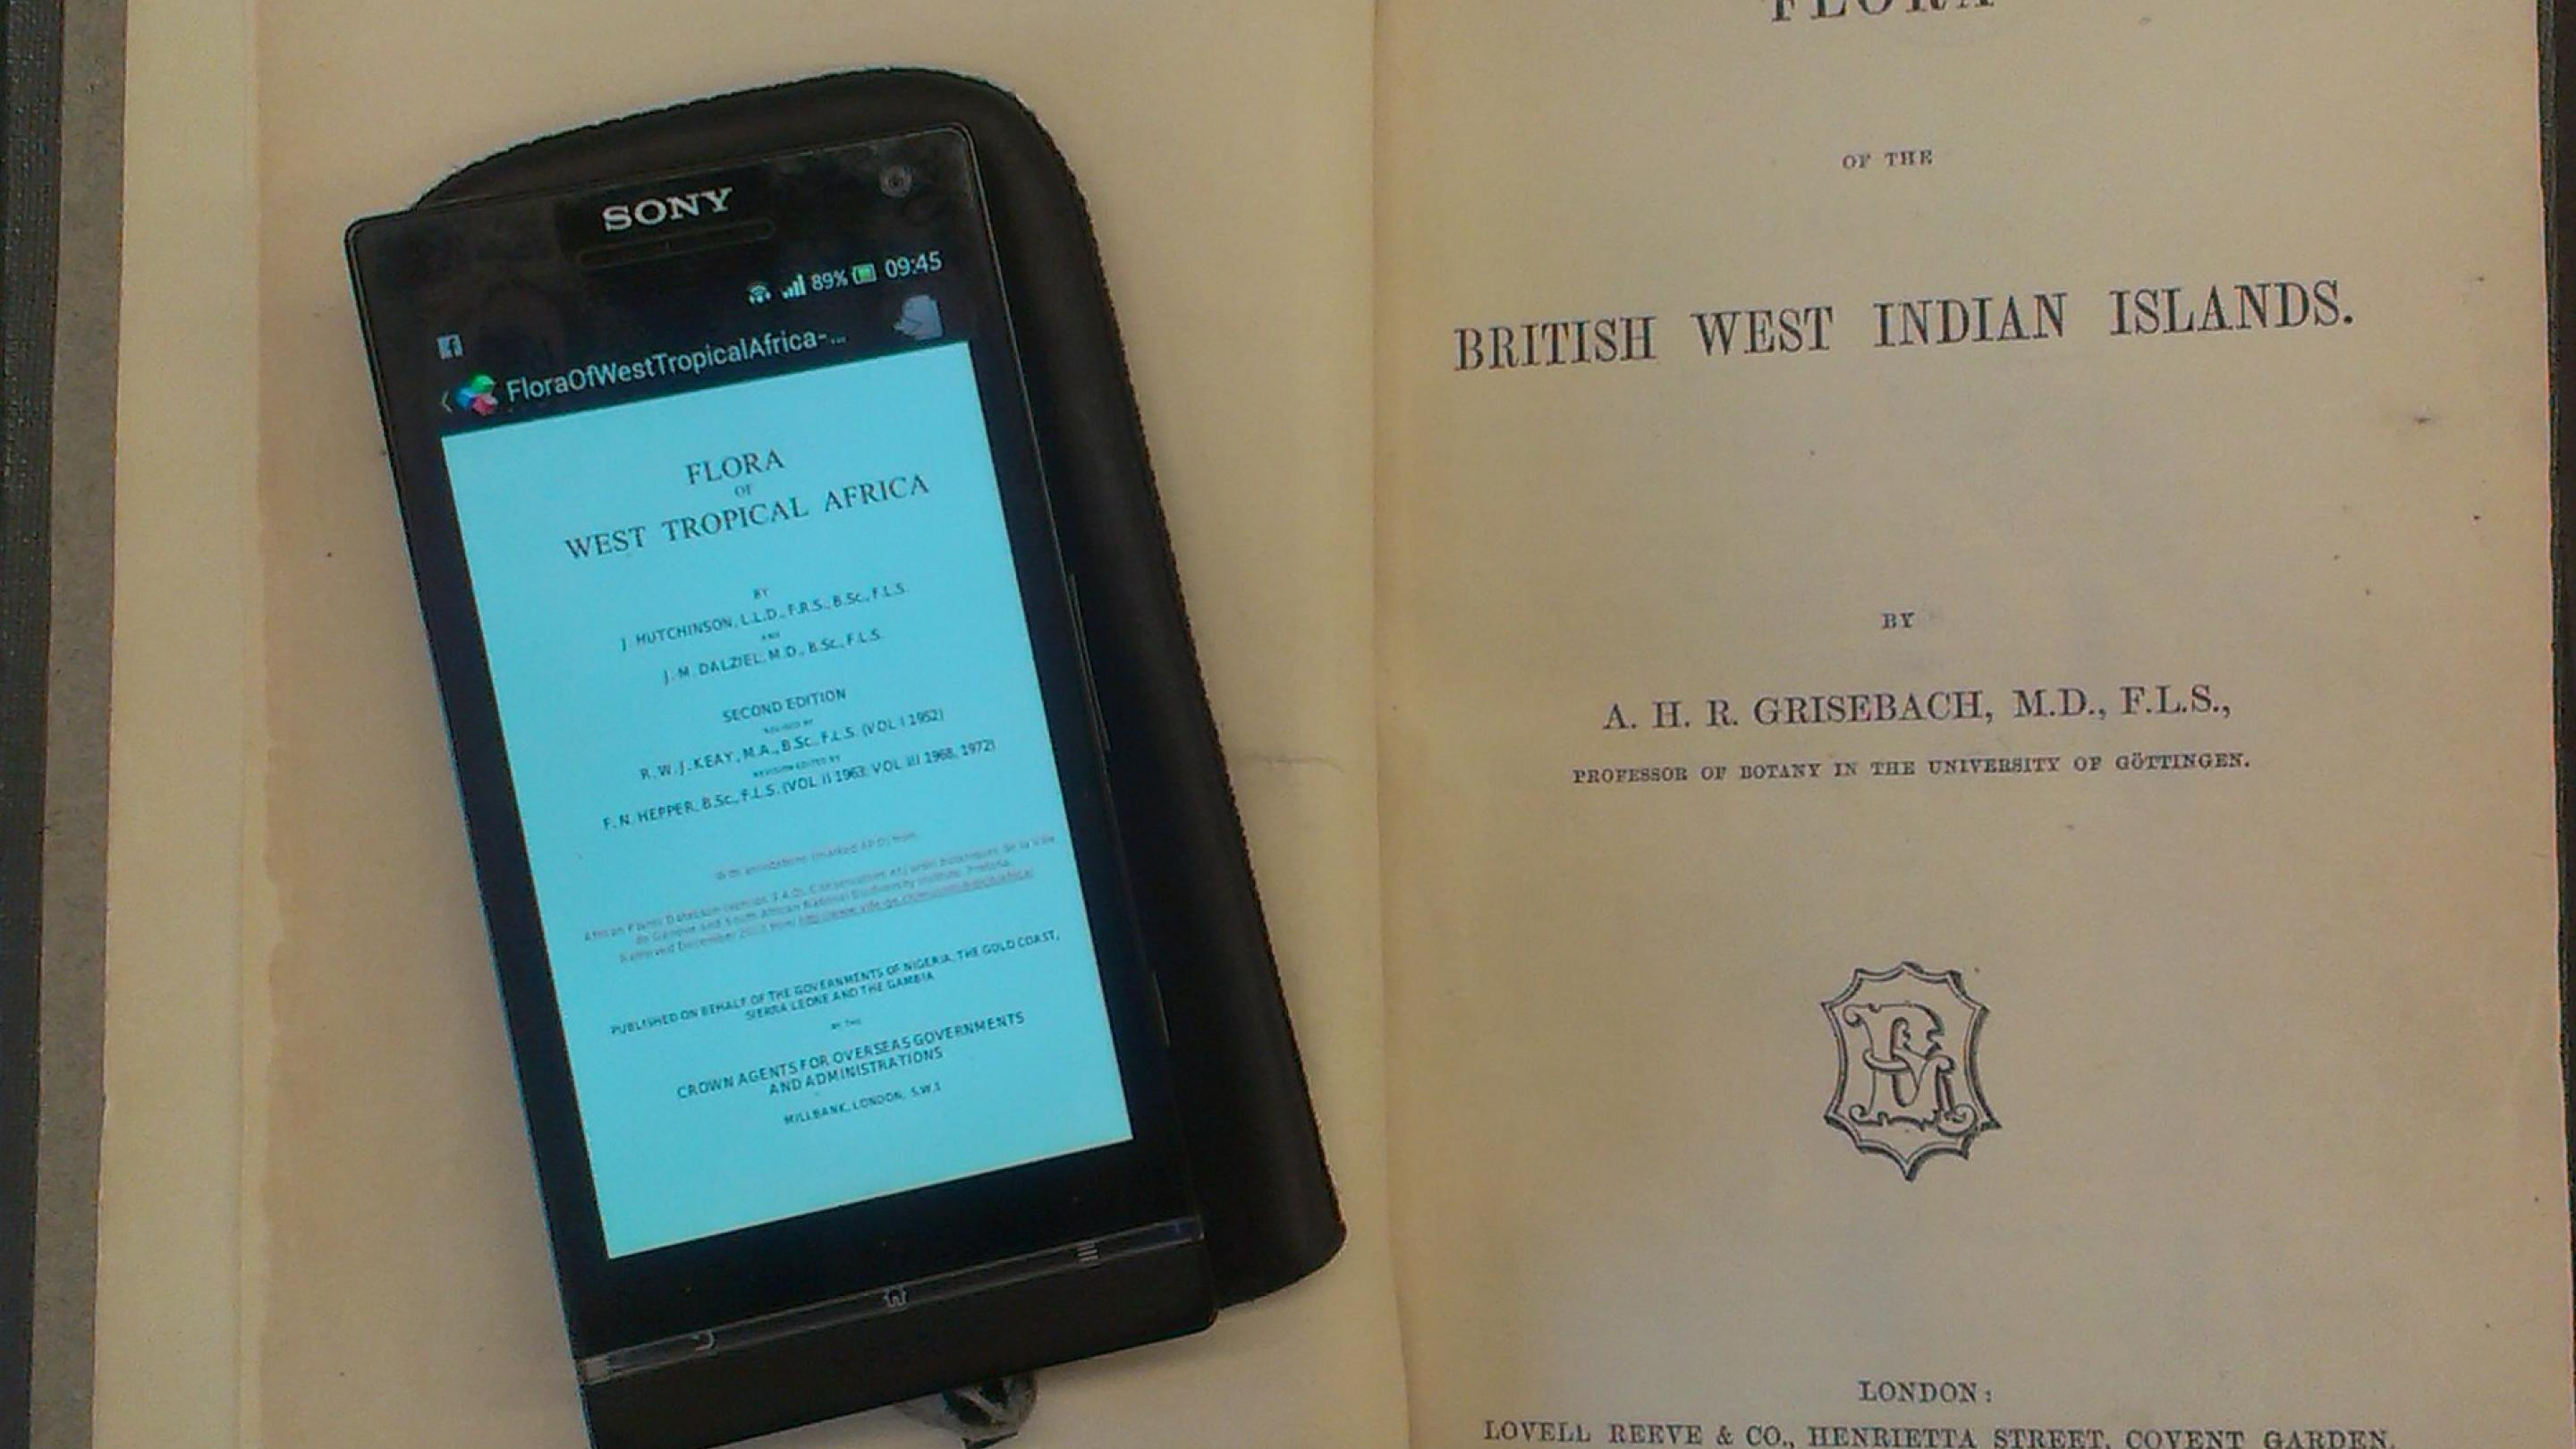 A picture showing the eBook Flora of West Tropical Africa on a mobile phone alongside an old volume of the Flora of the British West Indies